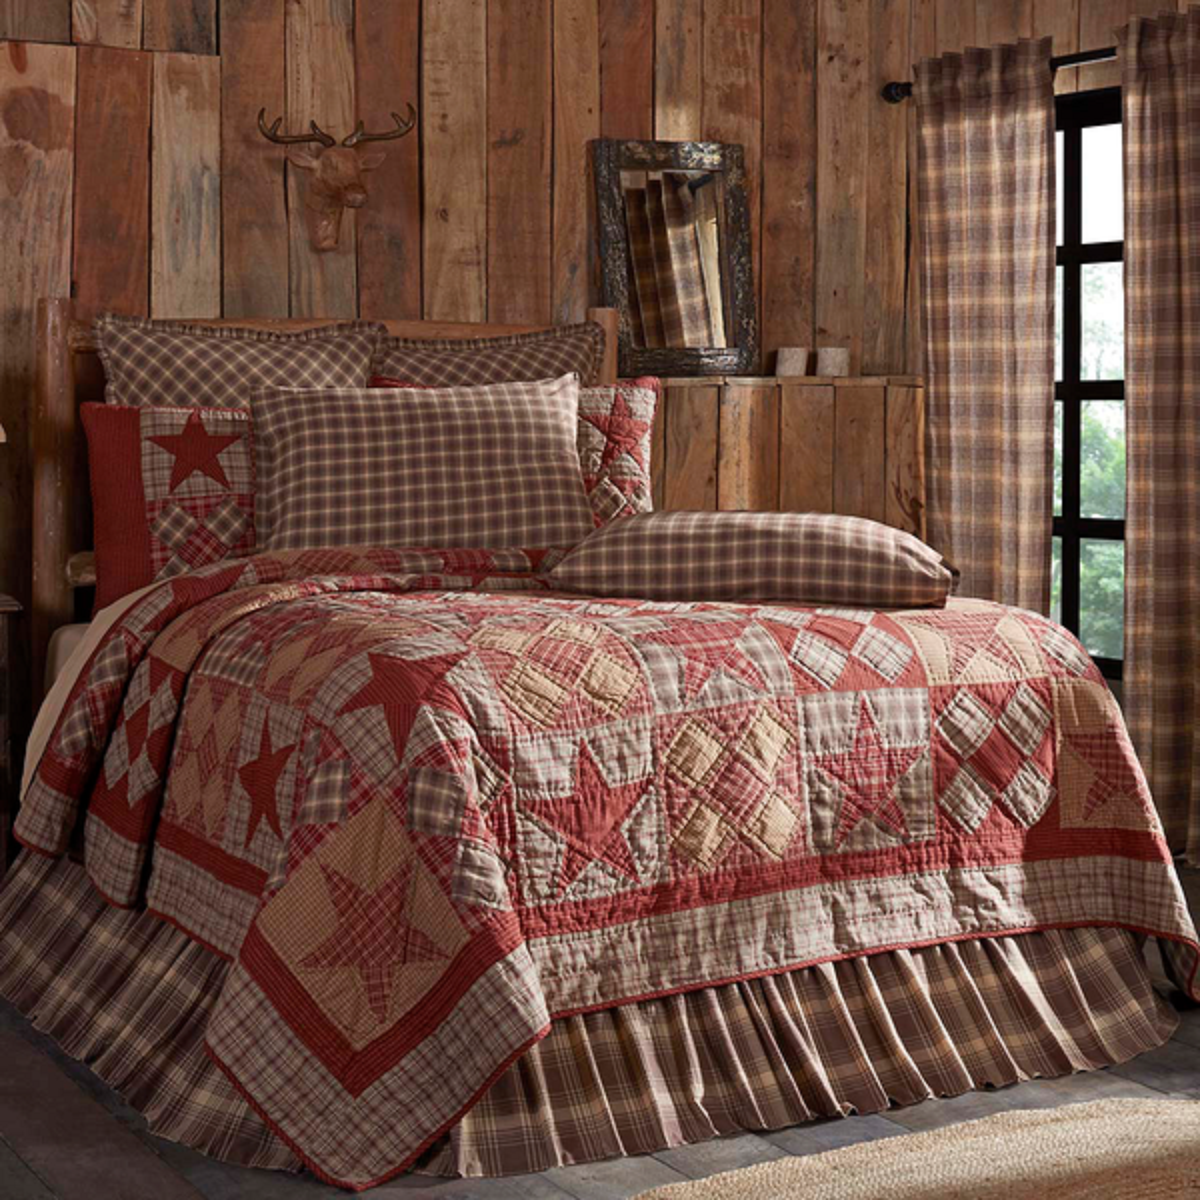 Dawson Star Bedding Quilt Rustic Lodge Patchwork Stars Lux, King, Queen, Twin